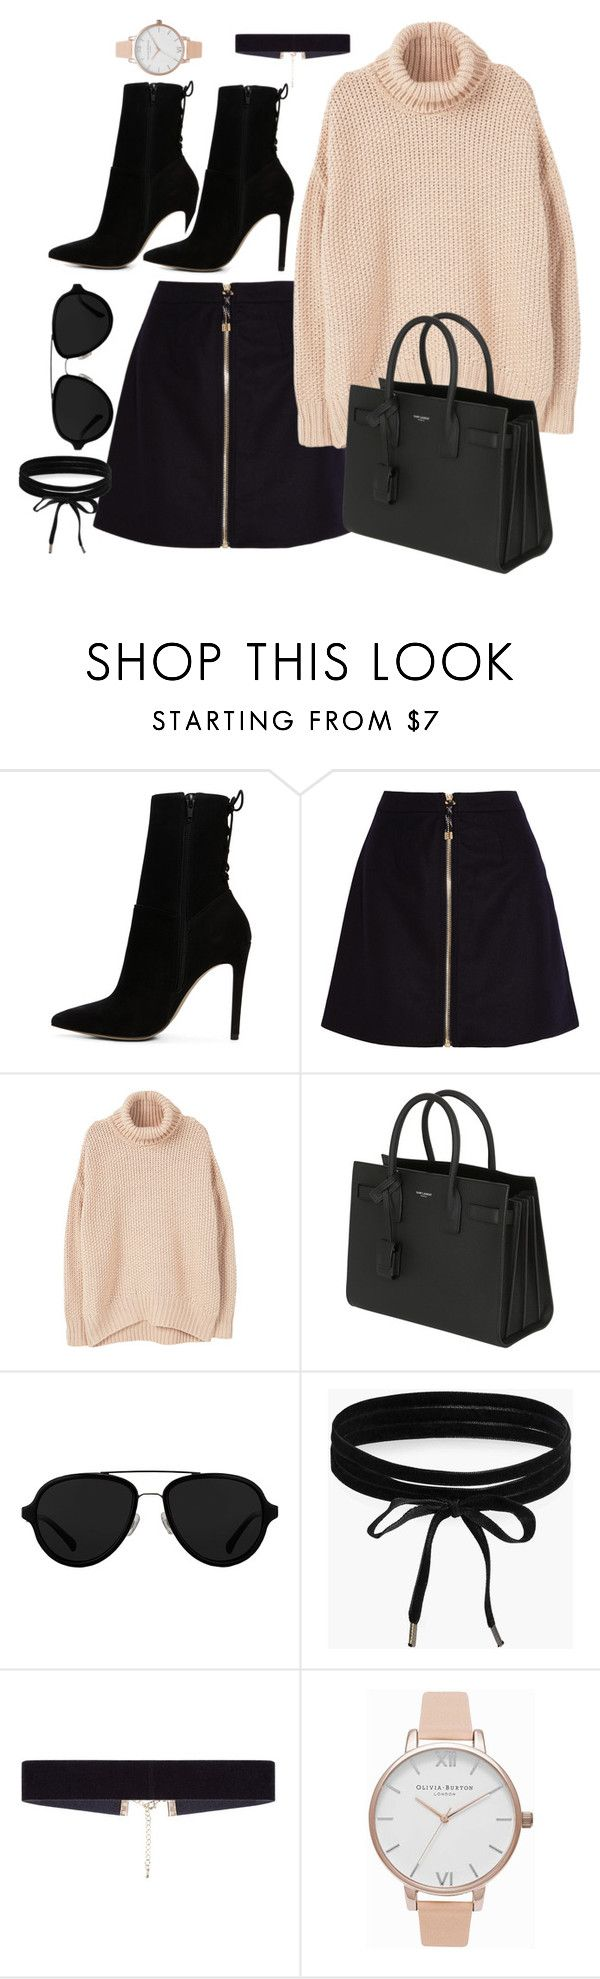 """Untitled #3016"" by theaverageauburn on Polyvore featuring ALDO, Acne Studios, MANGO, Yves Saint Laurent, 3.1 Phillip Lim, Boohoo, 8 Other Reasons and Olivia Burton"